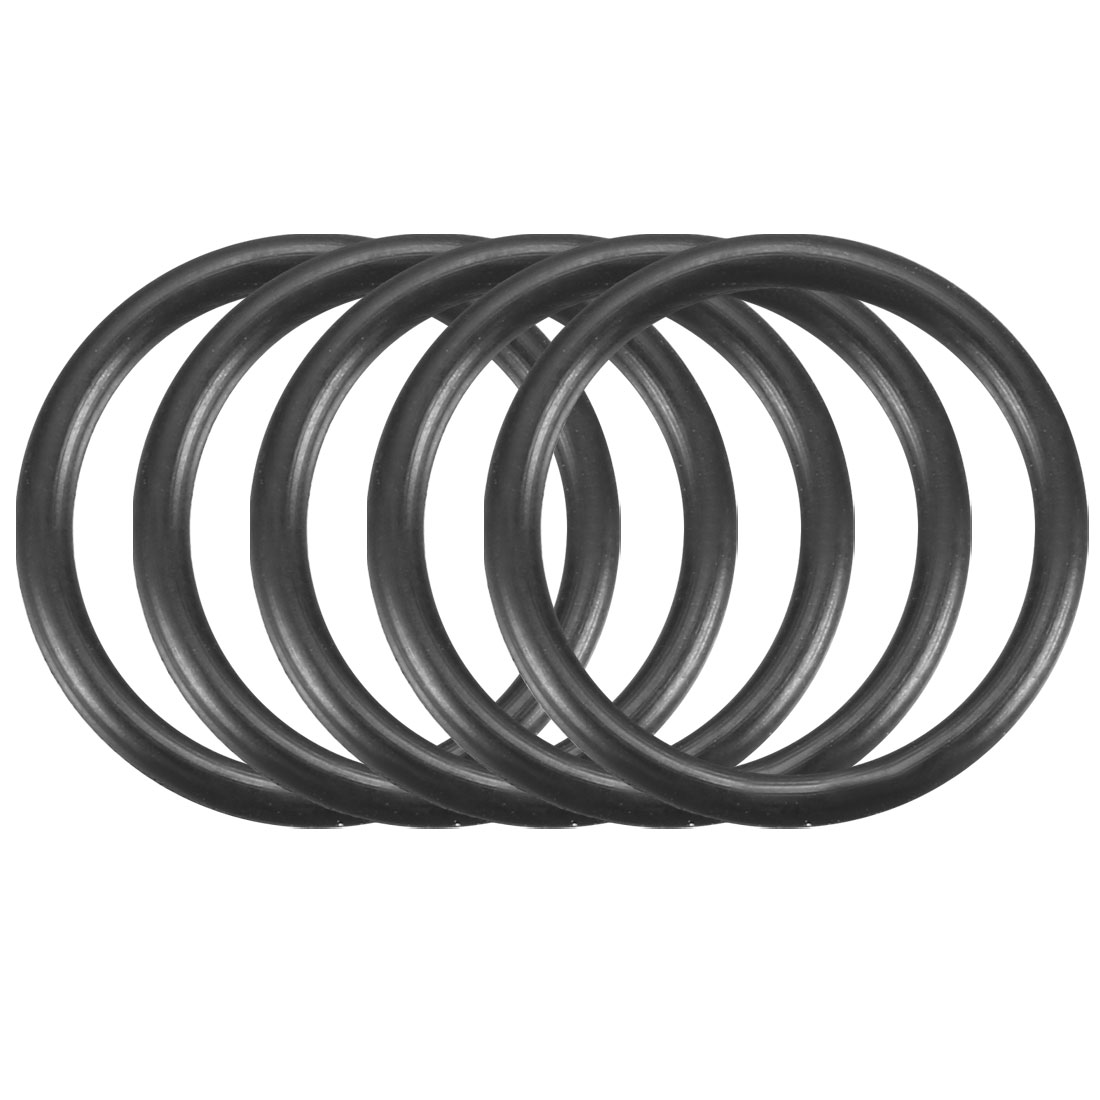 150 Pcs 16mm x 1.5mm Rubber O-rings NBR Heat Resistant Sealing Ring Grommets